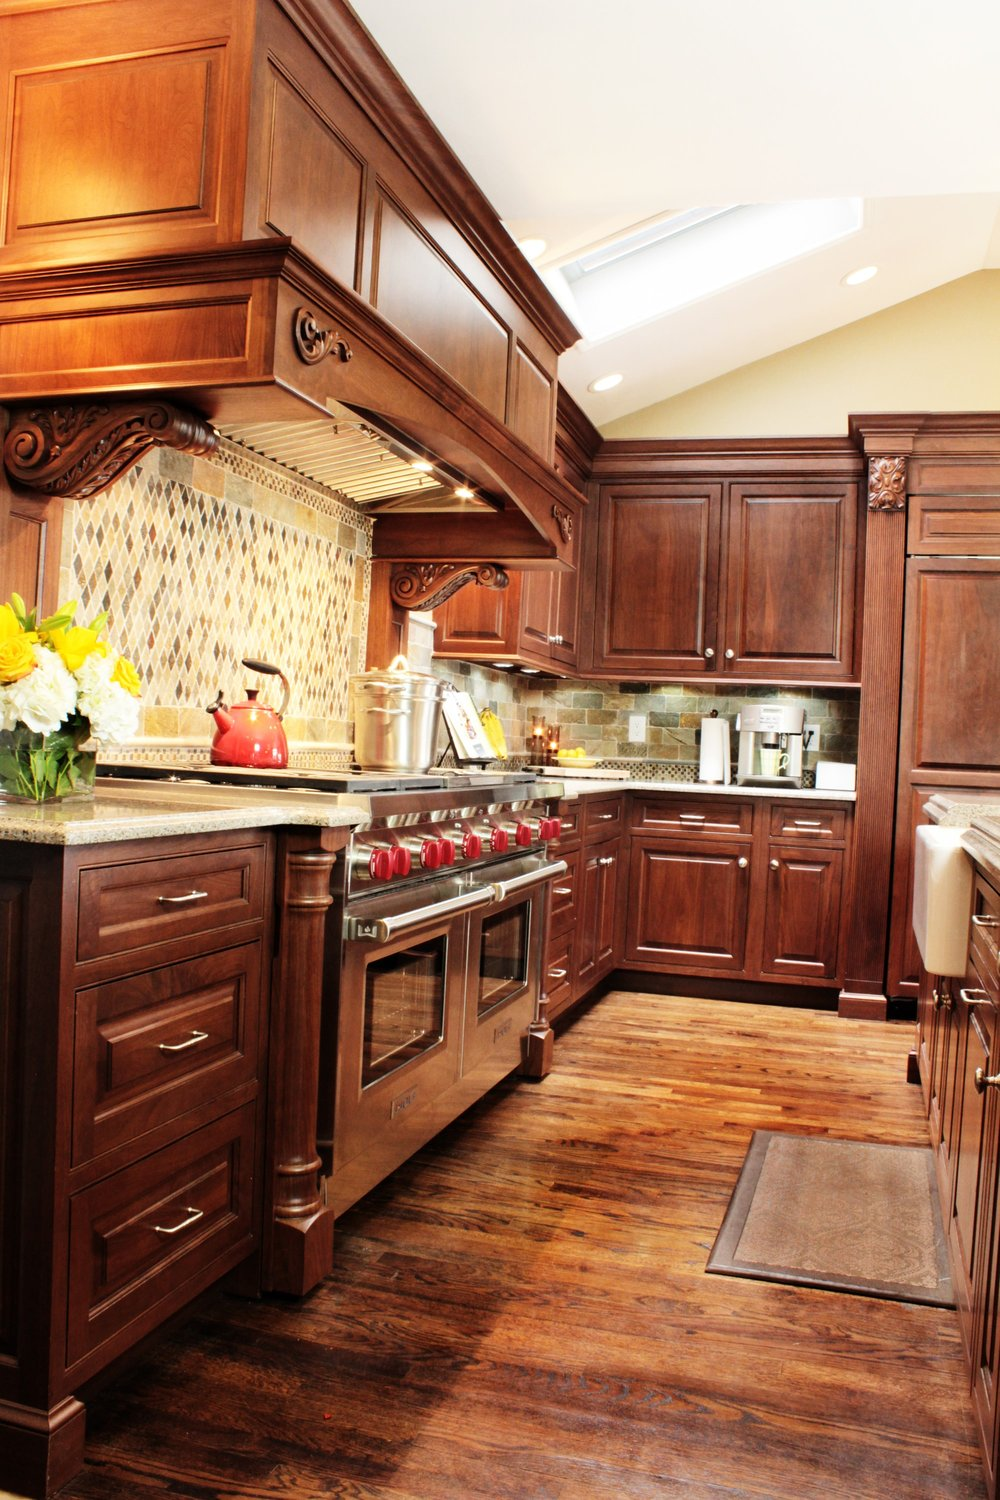 Traditional style kitchen with rustic style wooden floors